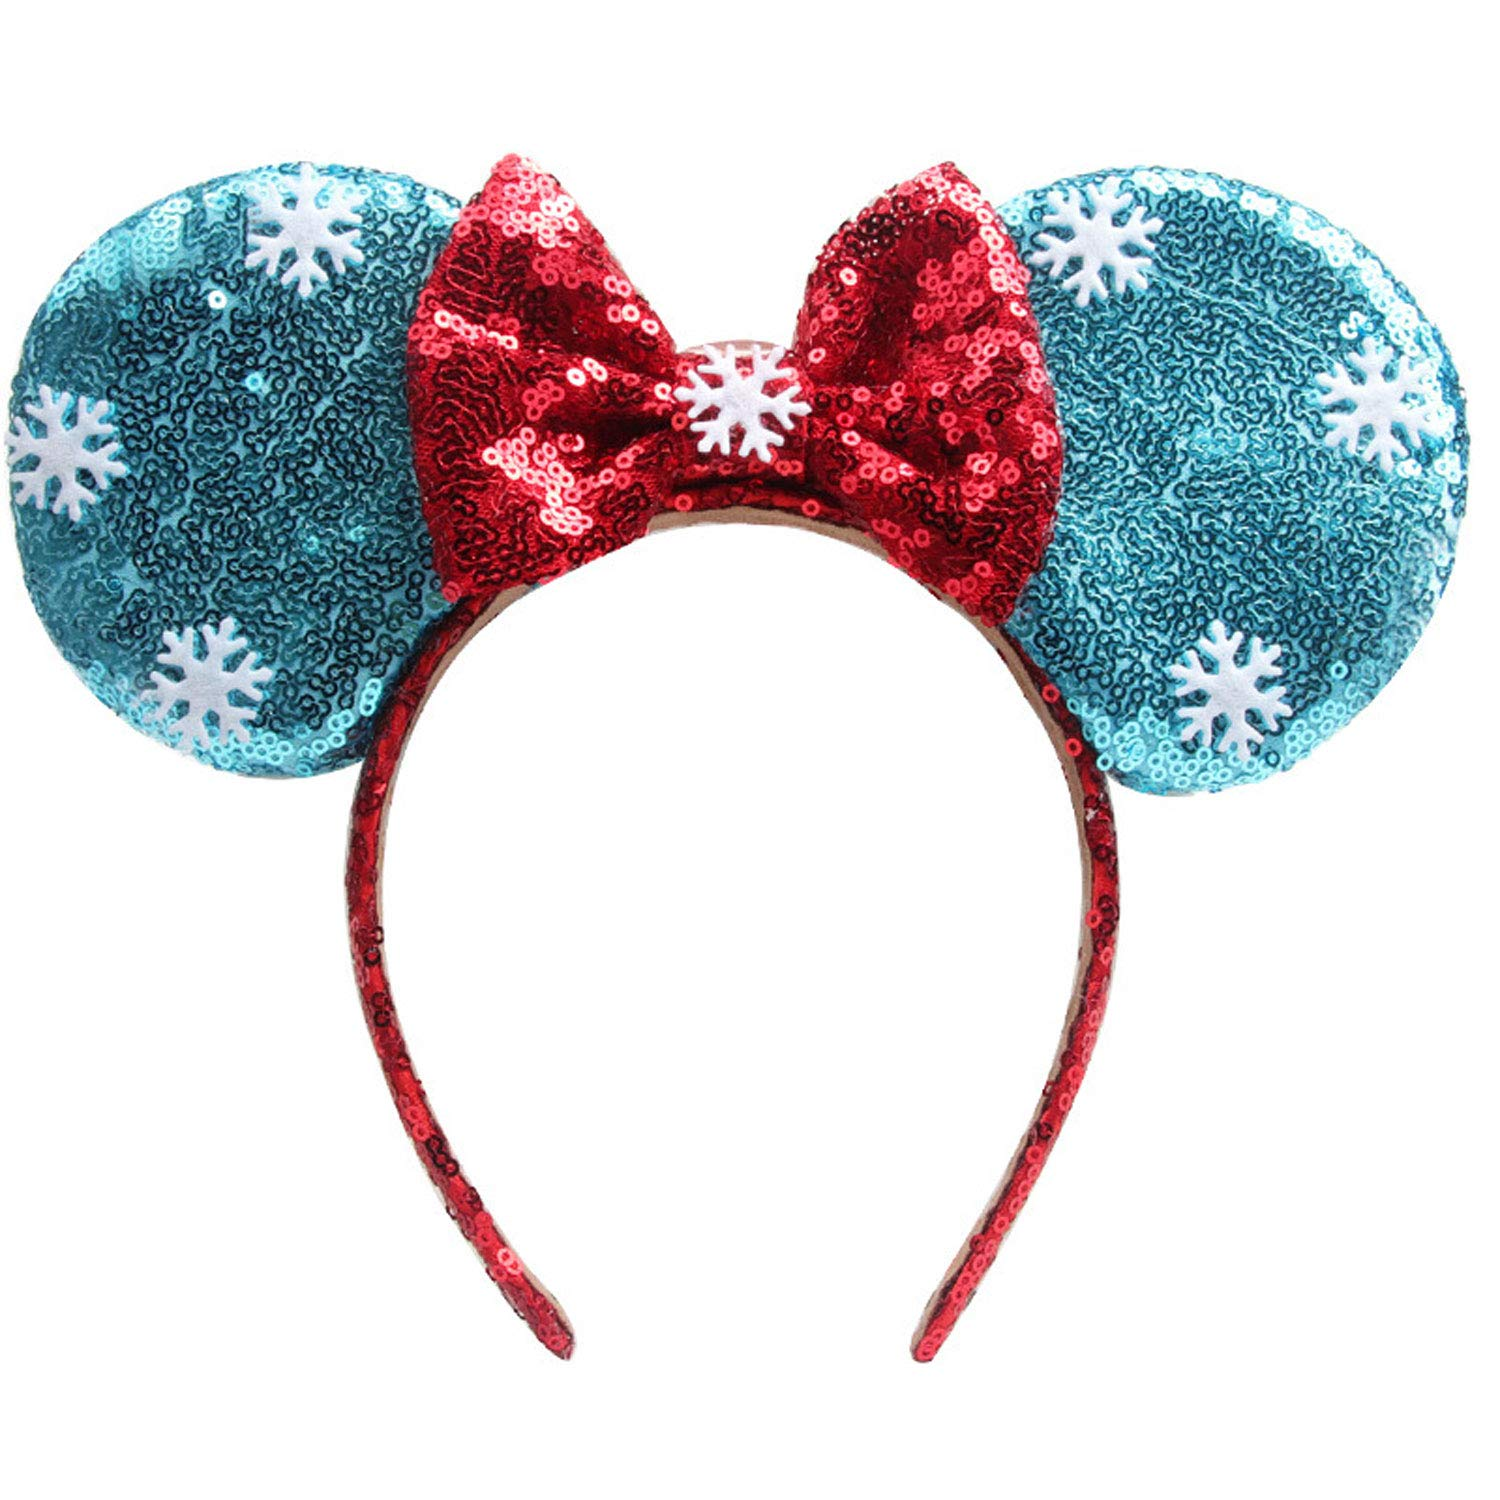 K T One Minnie Mickey Mouse Ears Headbands/& Bows Black Bow + Spiderweb Mermaid Girls Women Headband for Cosplay Costume Princess Party Birthday Decorations